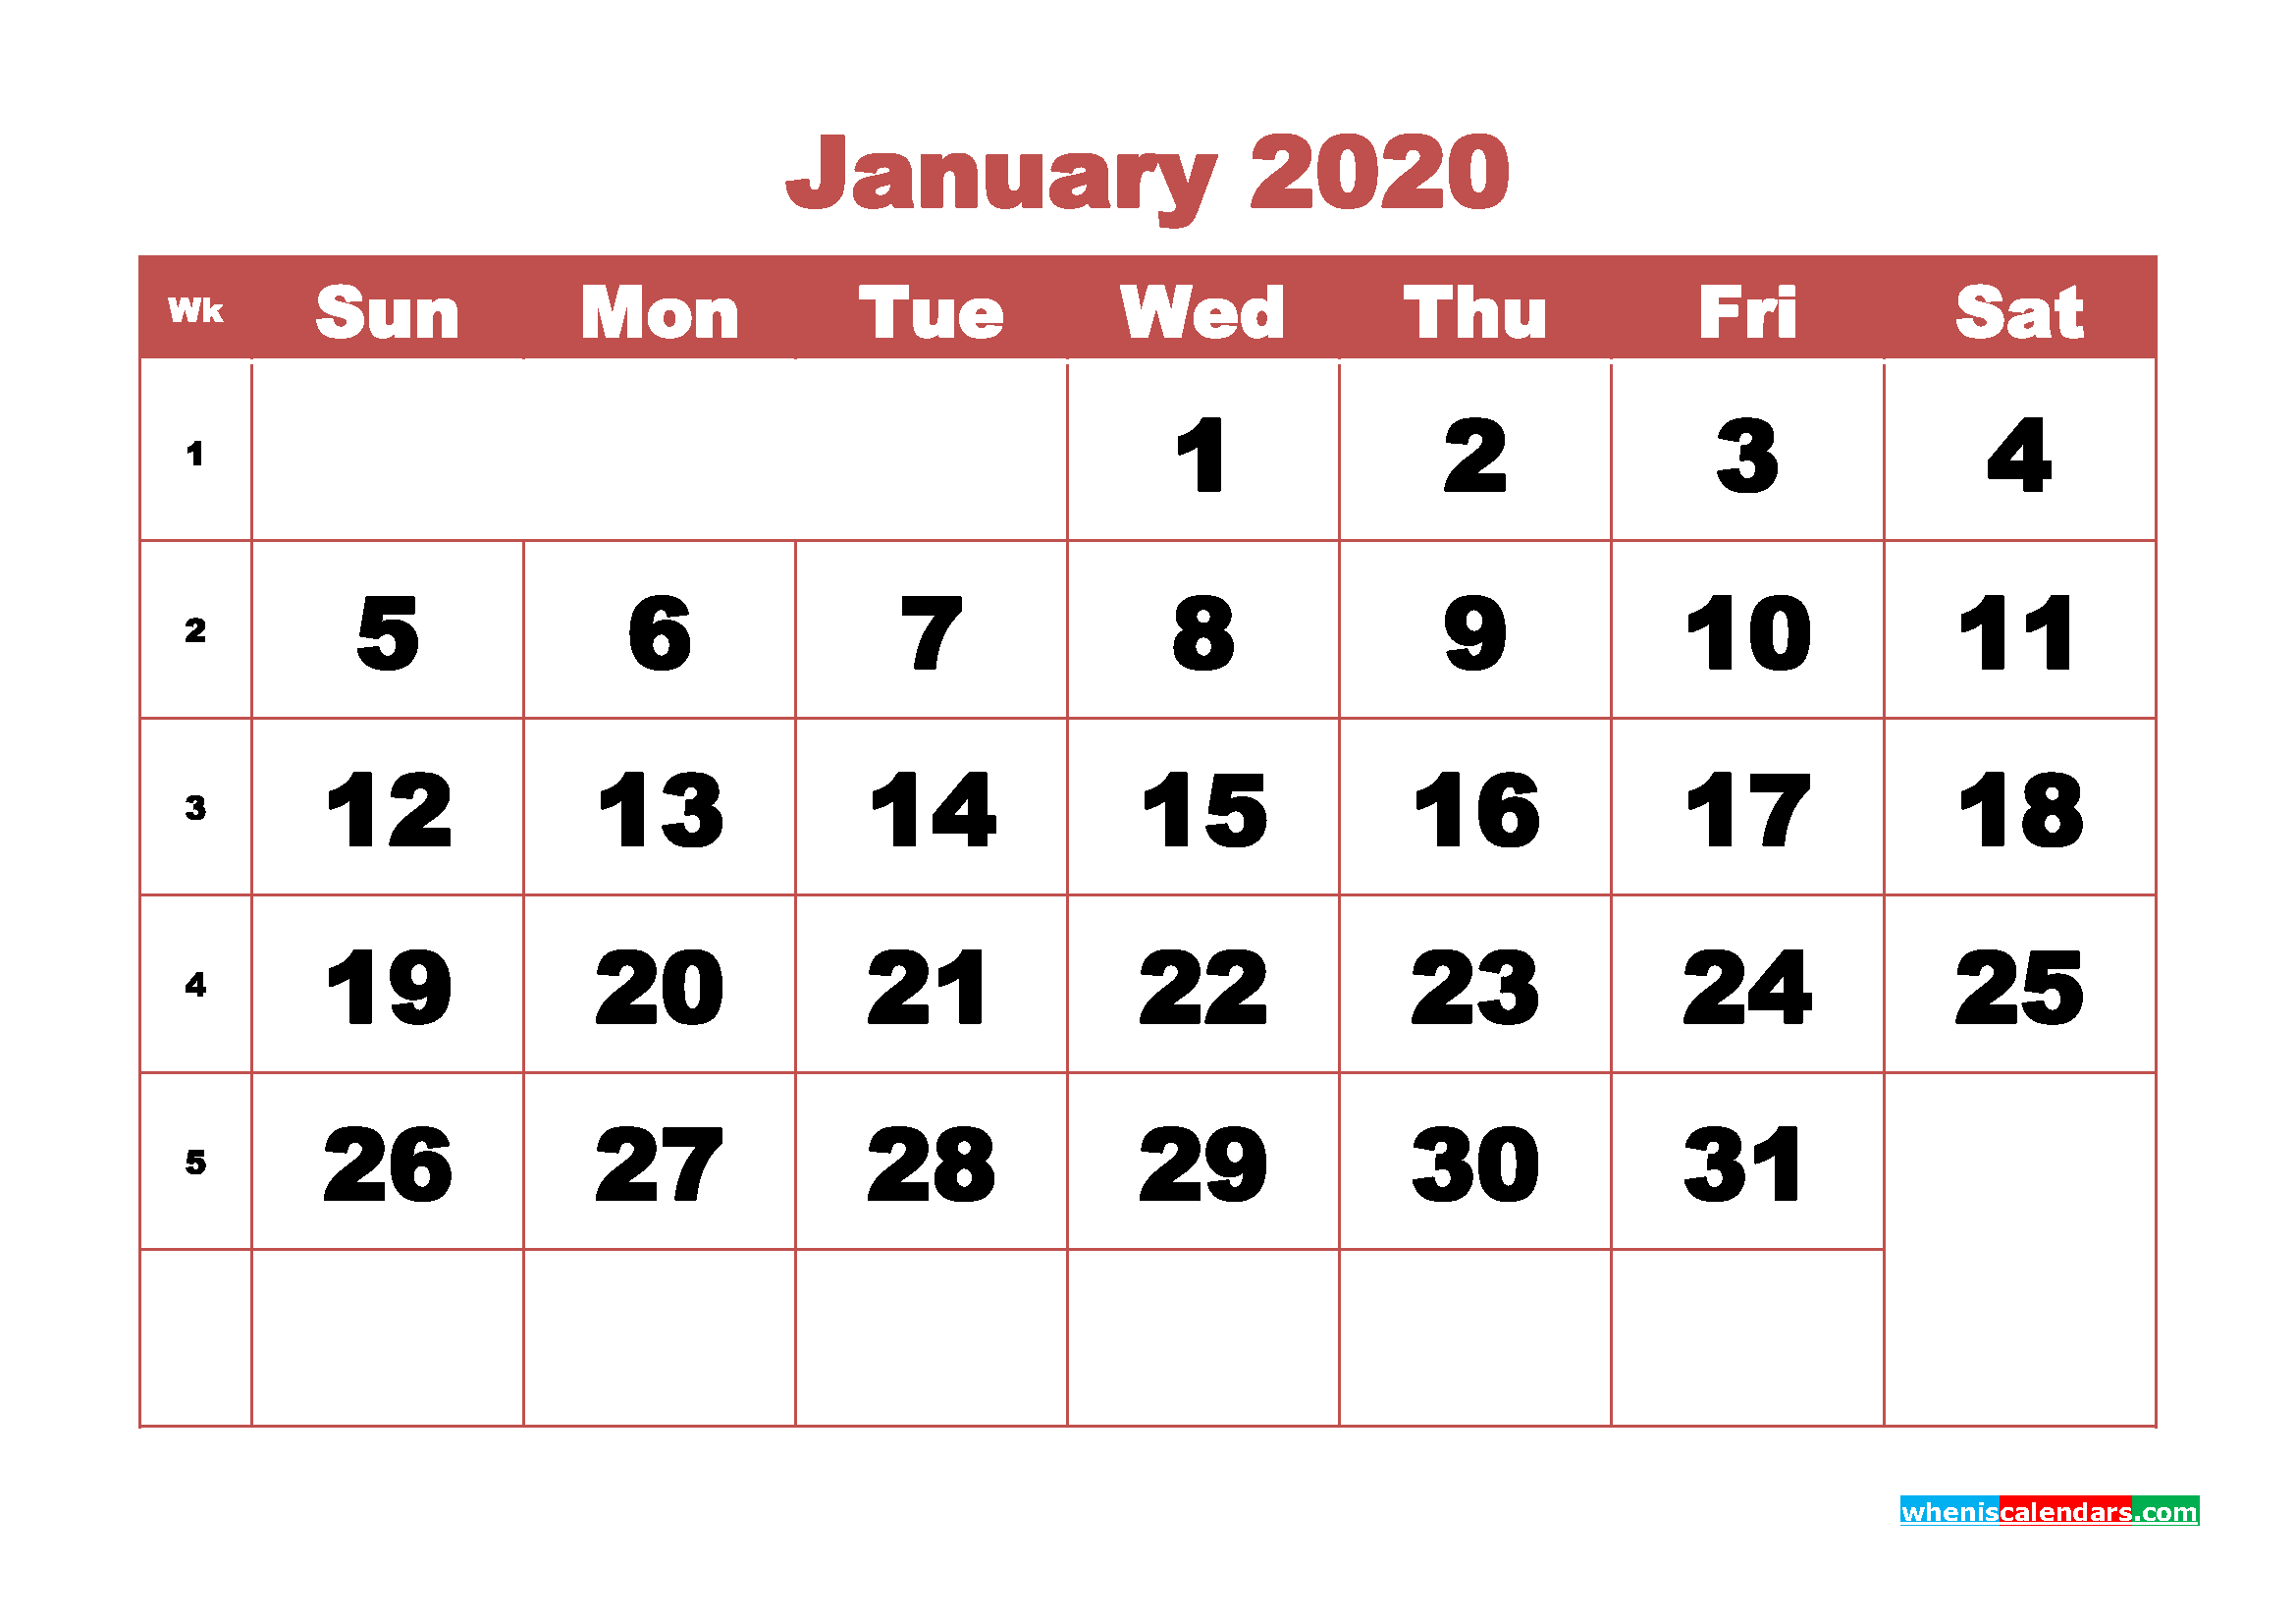 January 2020 Monthly Calendar Template Word